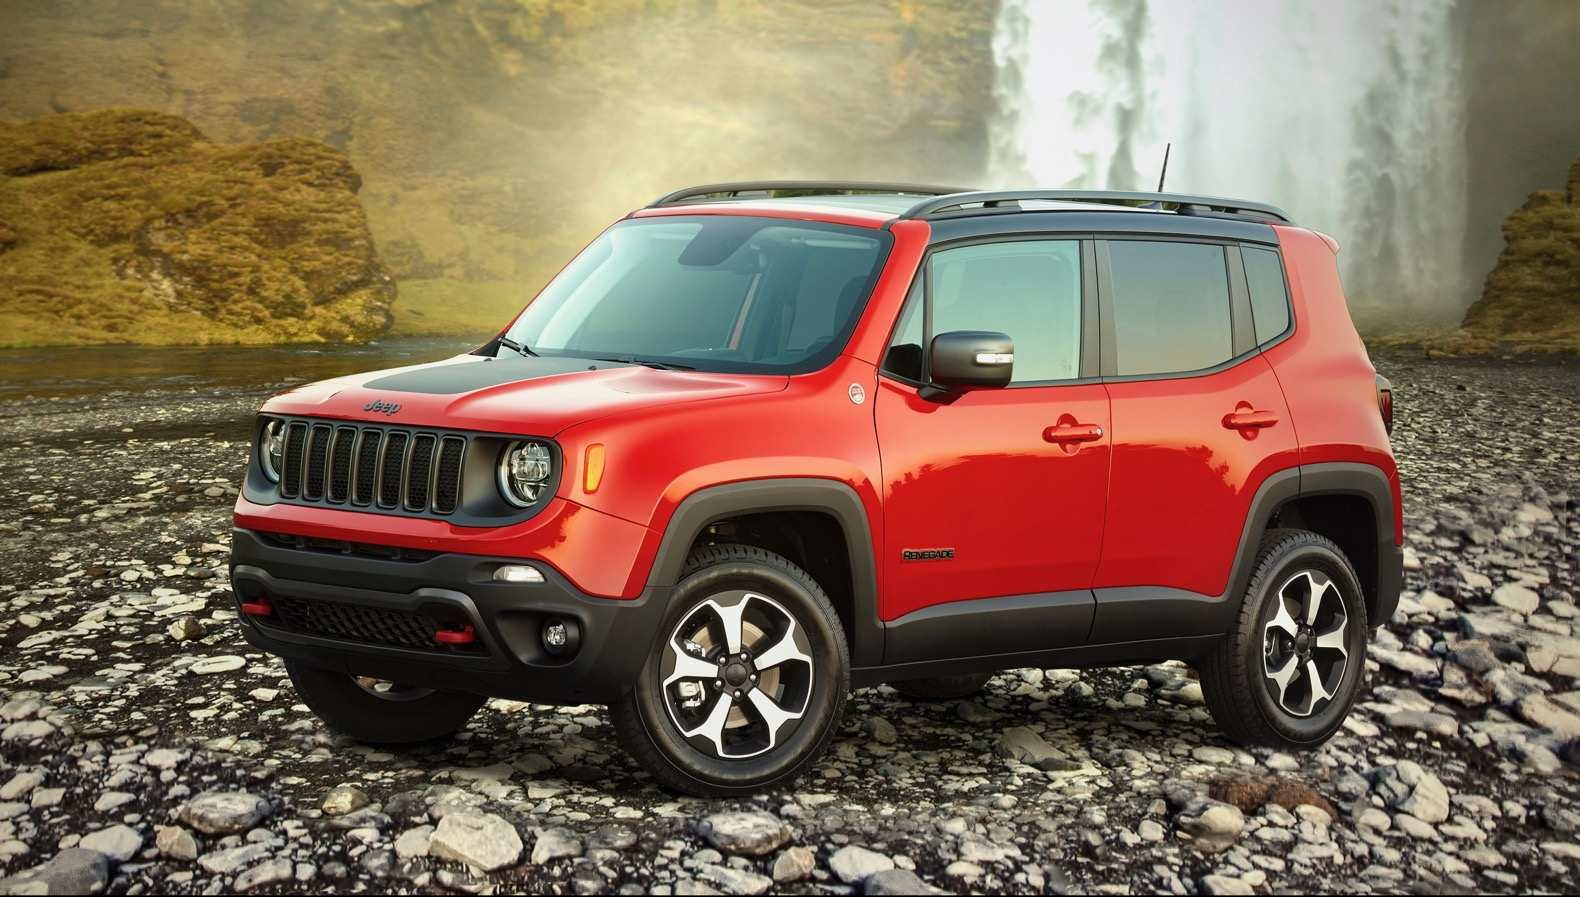 98 All New 2019 Jeep Renegade Review Engine by 2019 Jeep Renegade Review